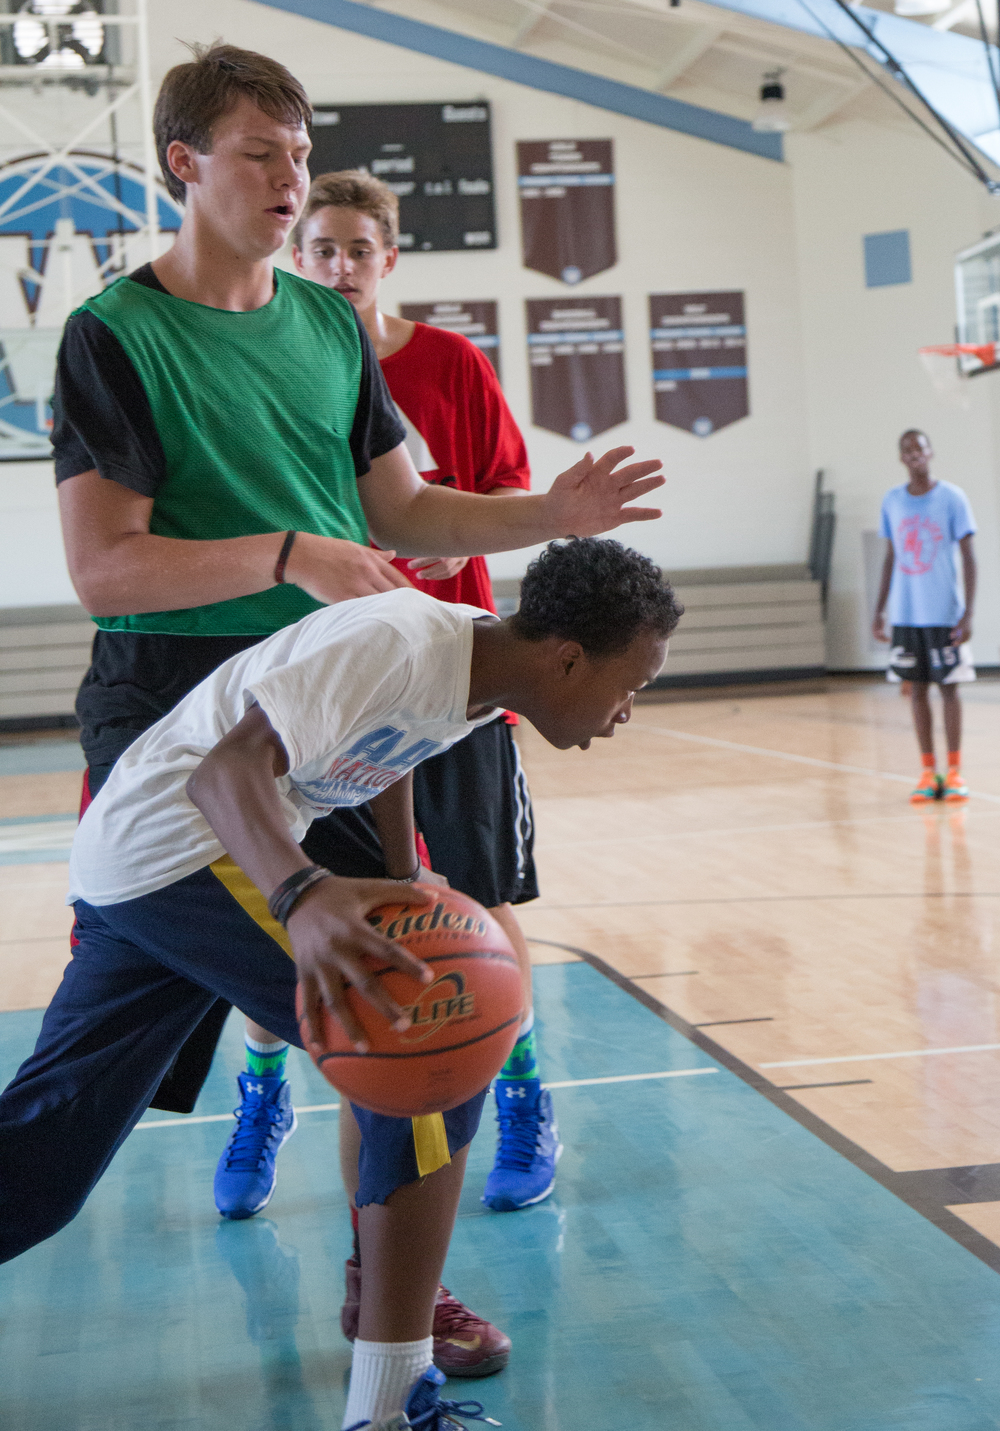 Aaron Basketball Camp July 2015-155.jpg